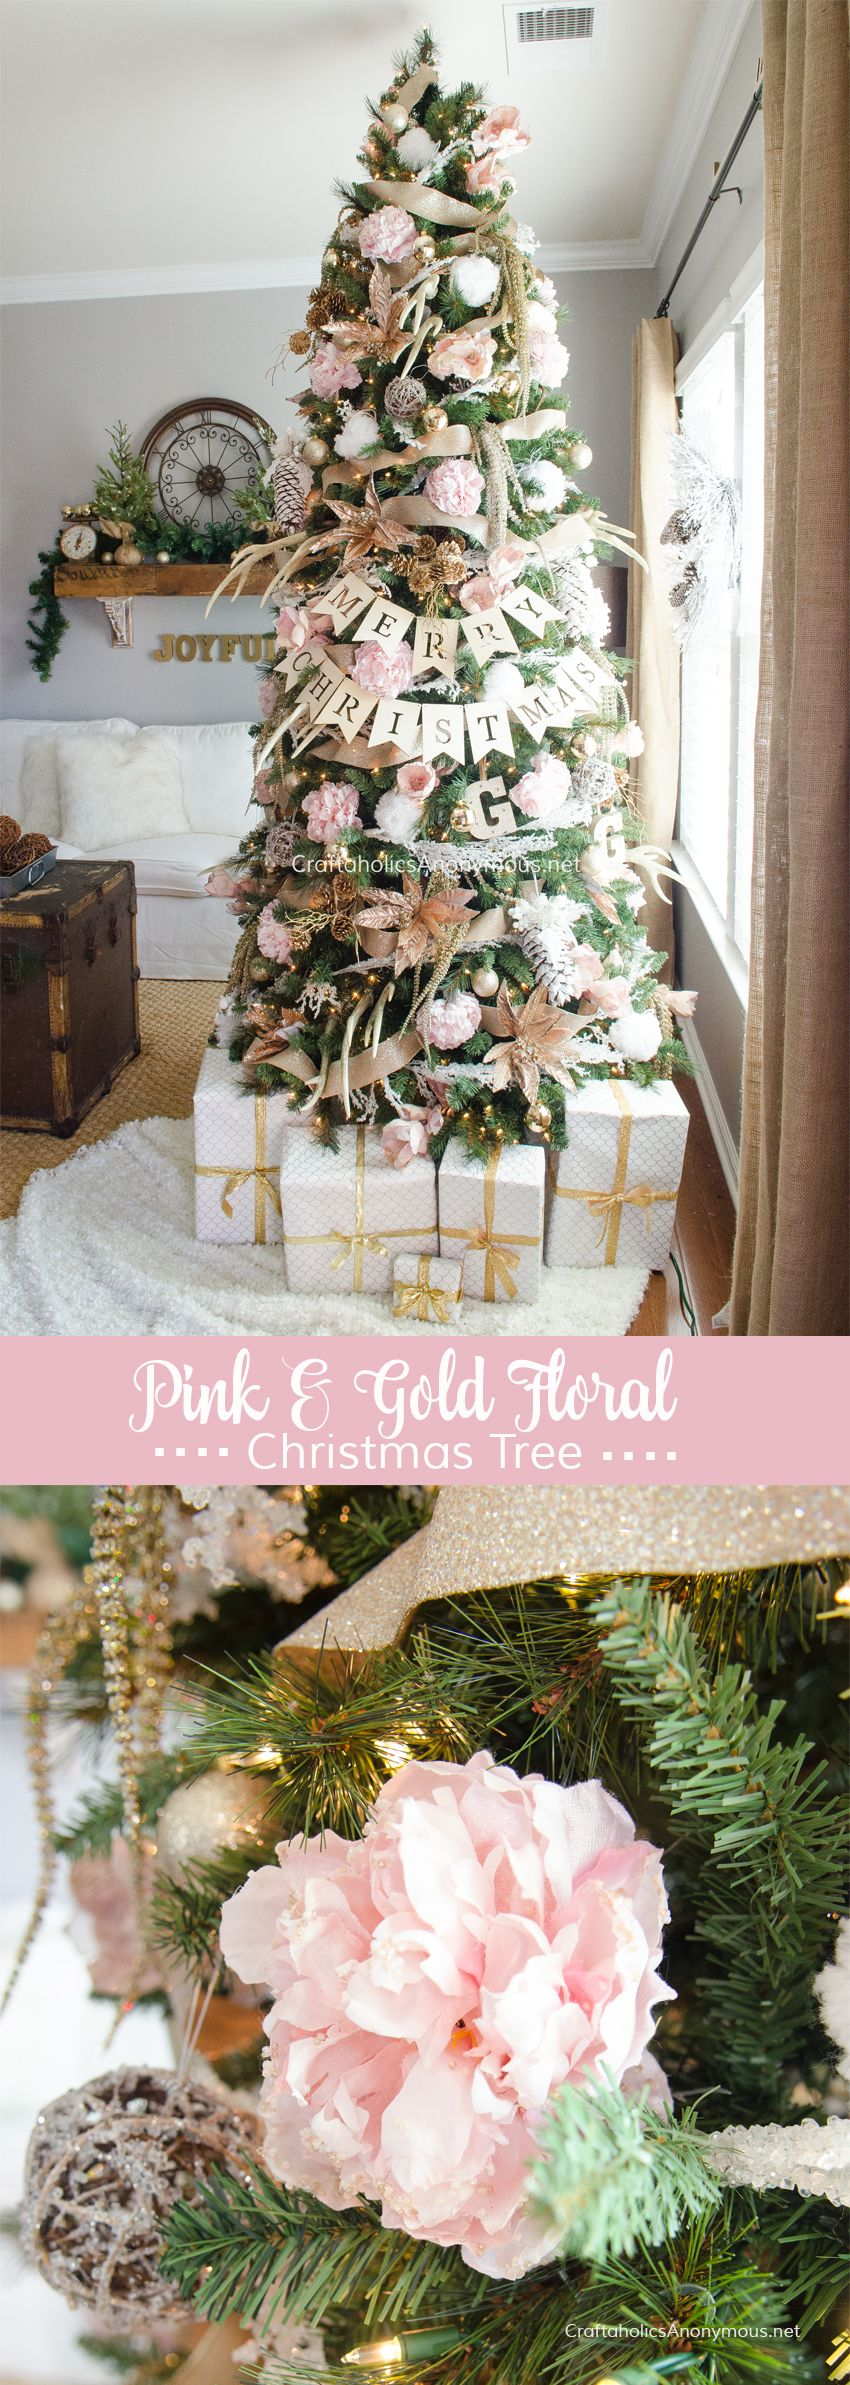 Craftaholics Anonymous Pink And Gold Floral Christmas Tree Floral Christmas Tree Christmas Floral Gold Christmas Tree